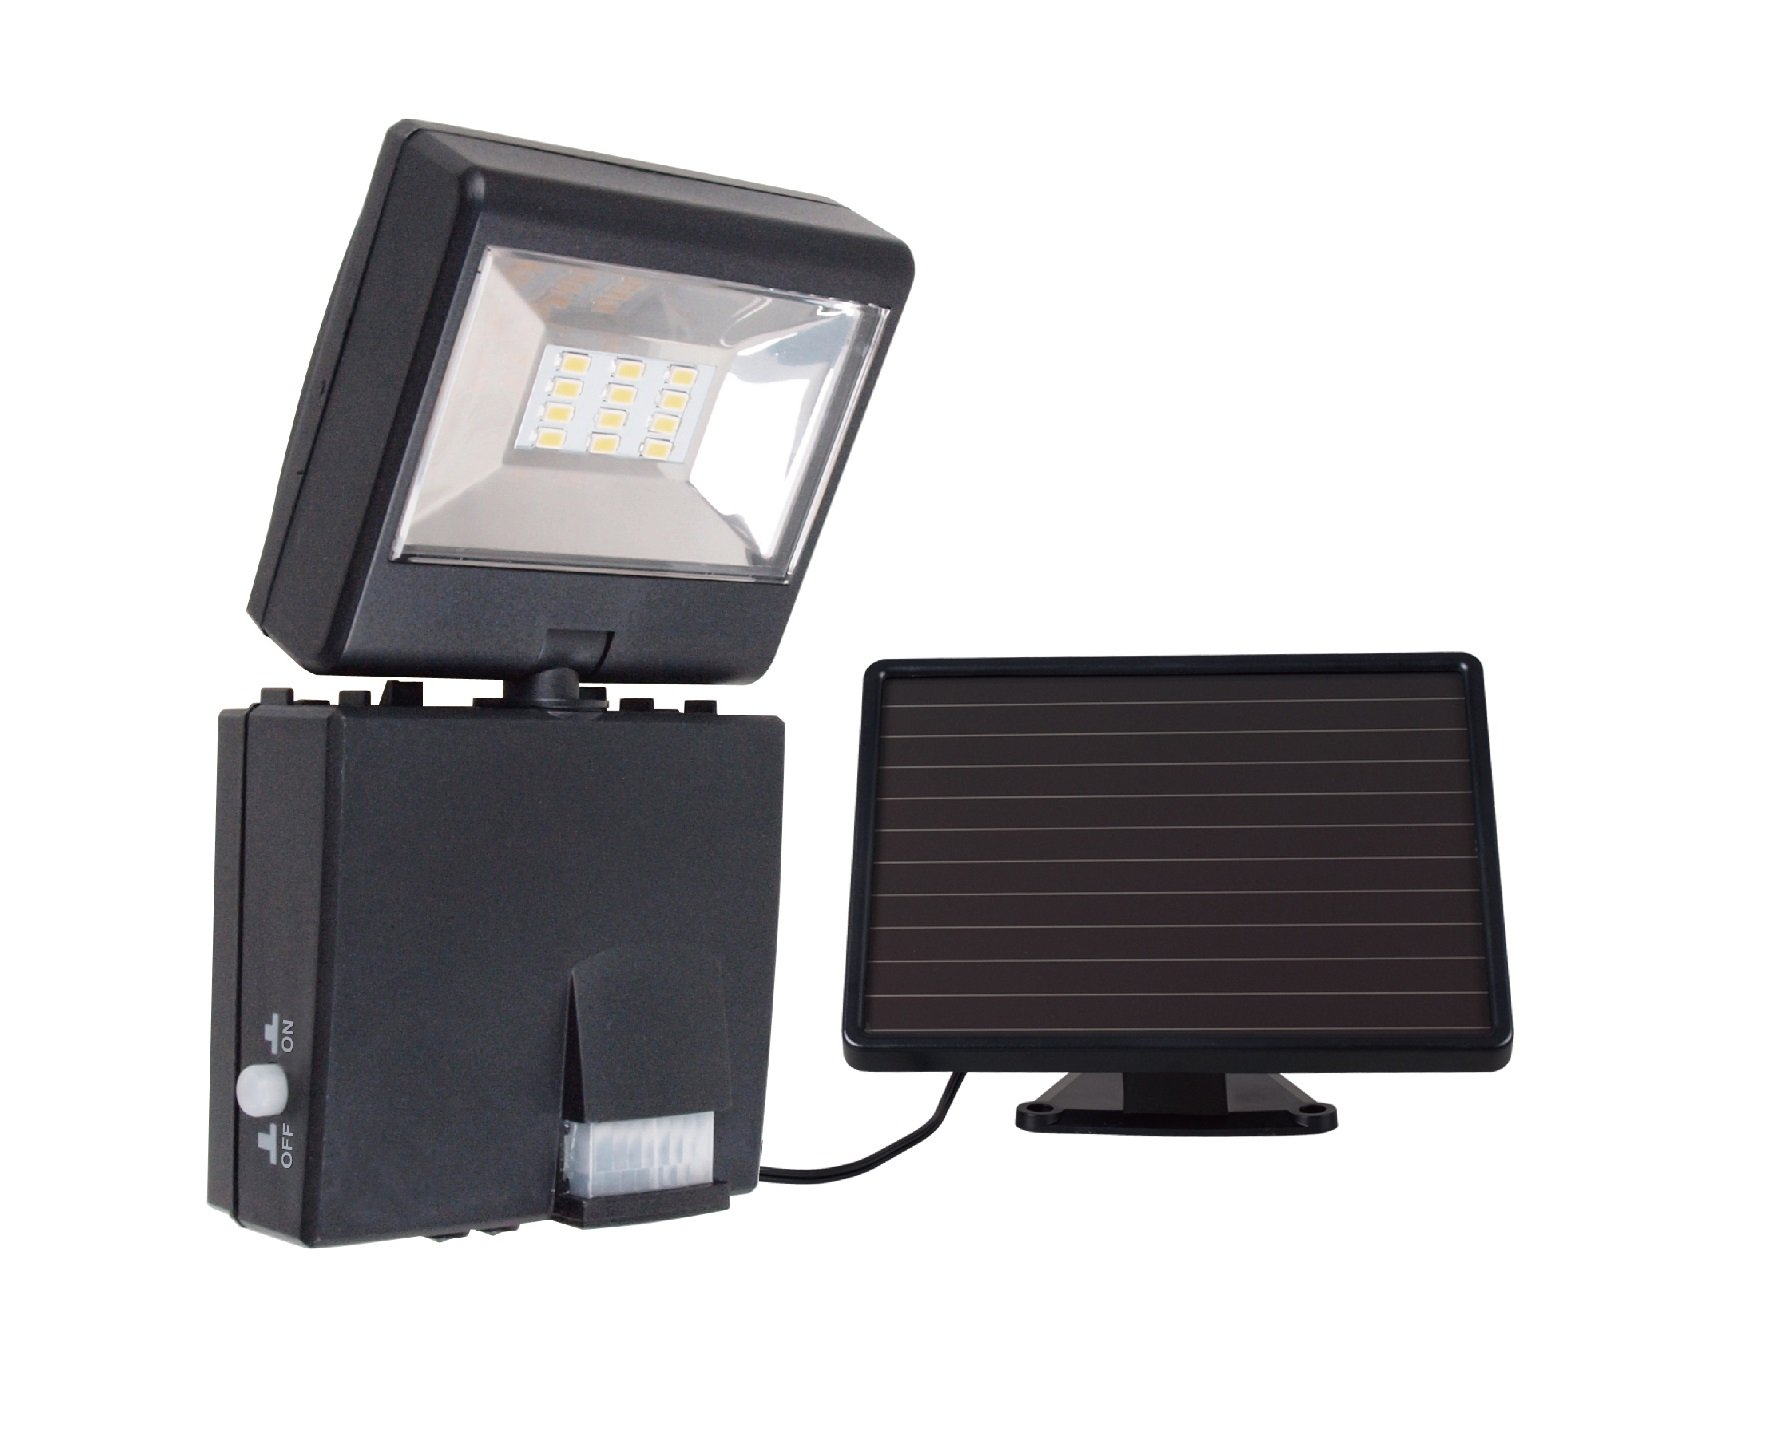 Link2Home 480 lm Led Solar Security Adjustable Single Head Sensor Floodlight with Photocell Technology in Black by Link2Home